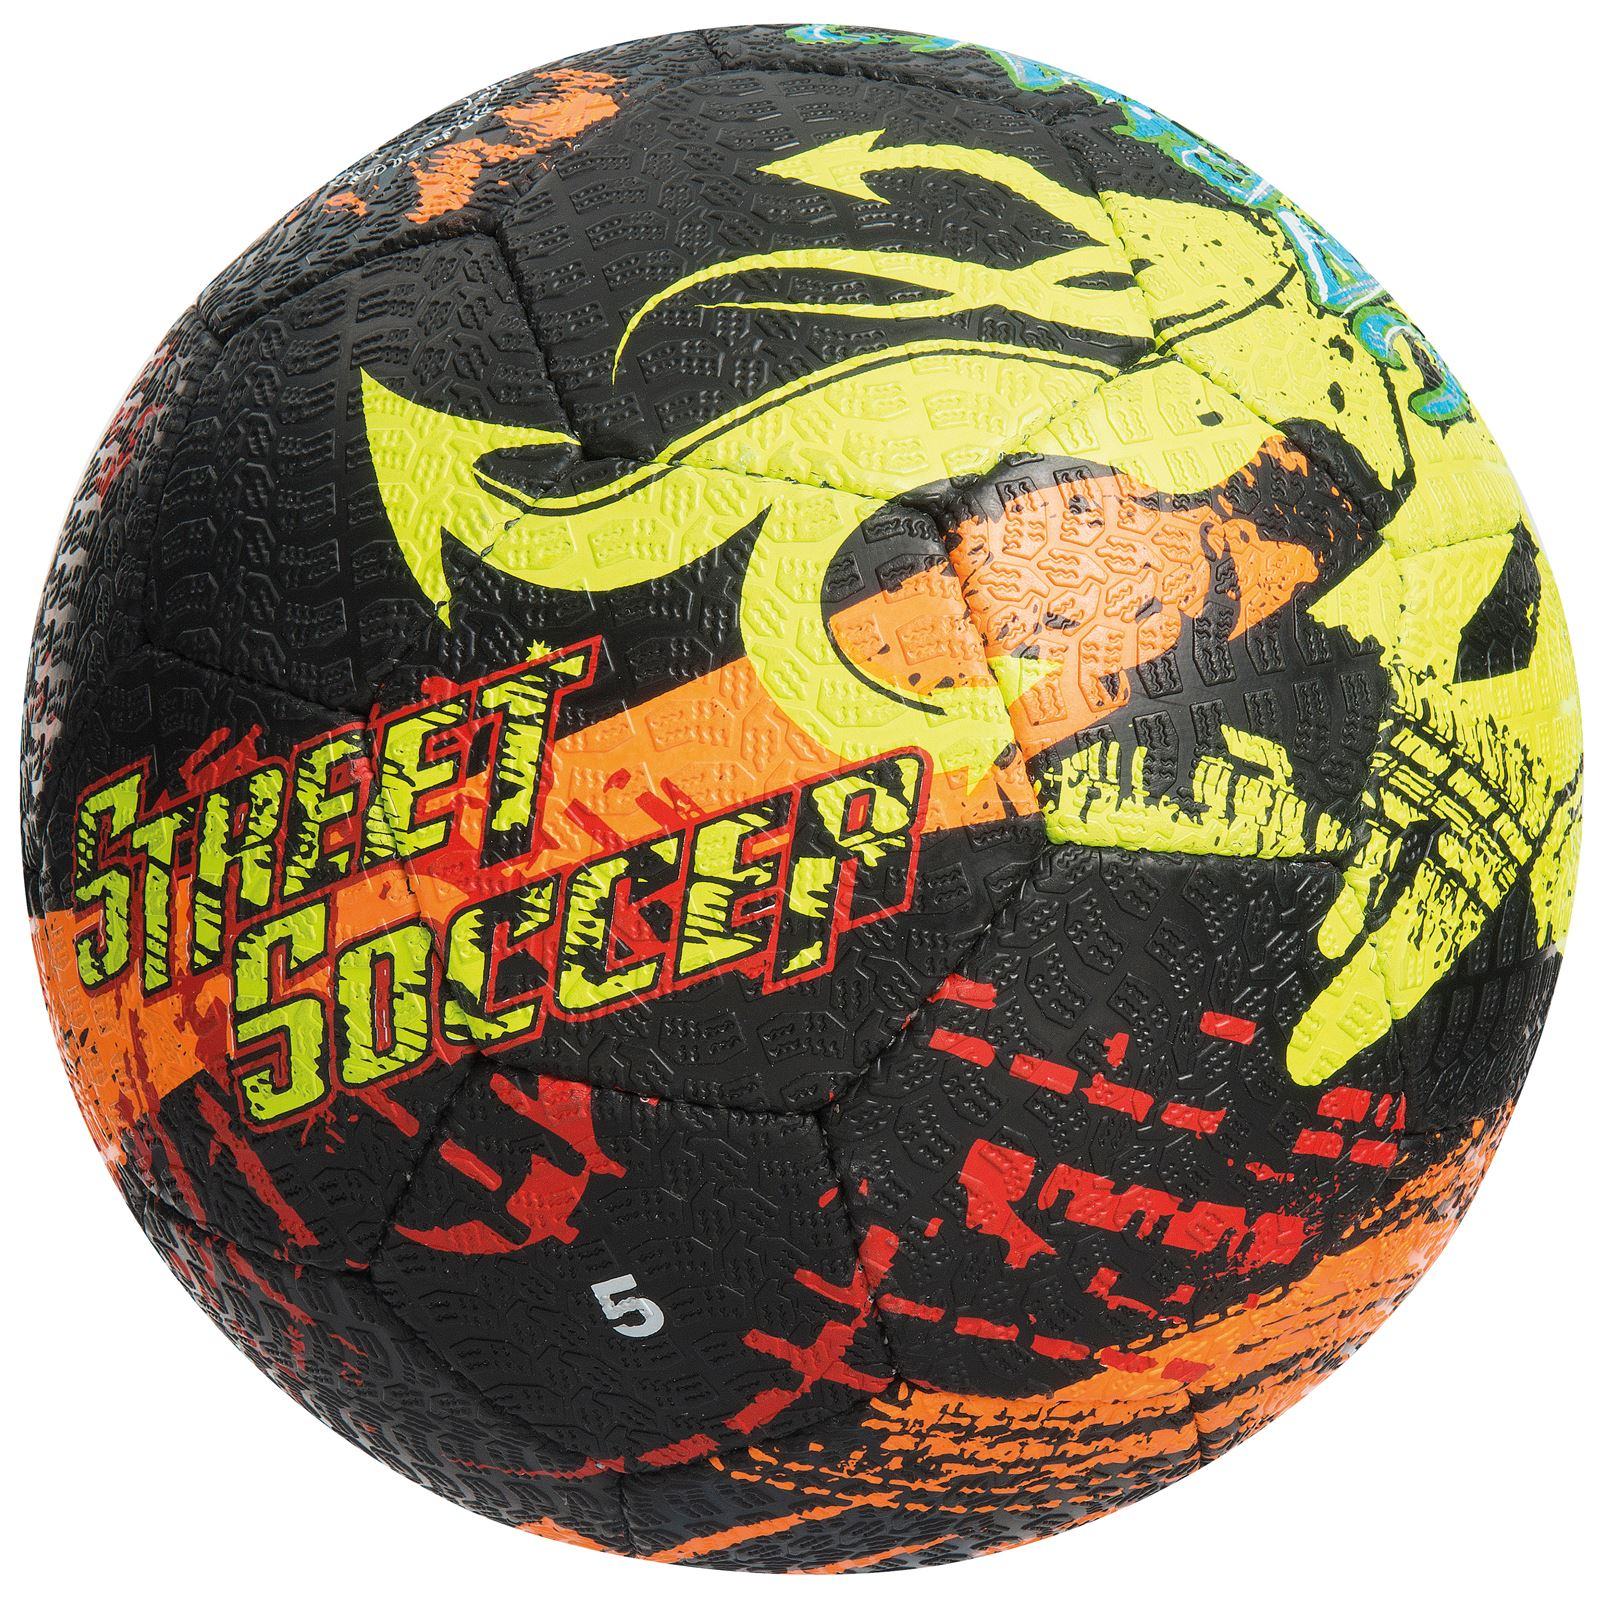 Precision-Street-Vortex-Mania-Hard-Ground-Ball-Street-Rubber-Football-Size-4-5 miniatura 6